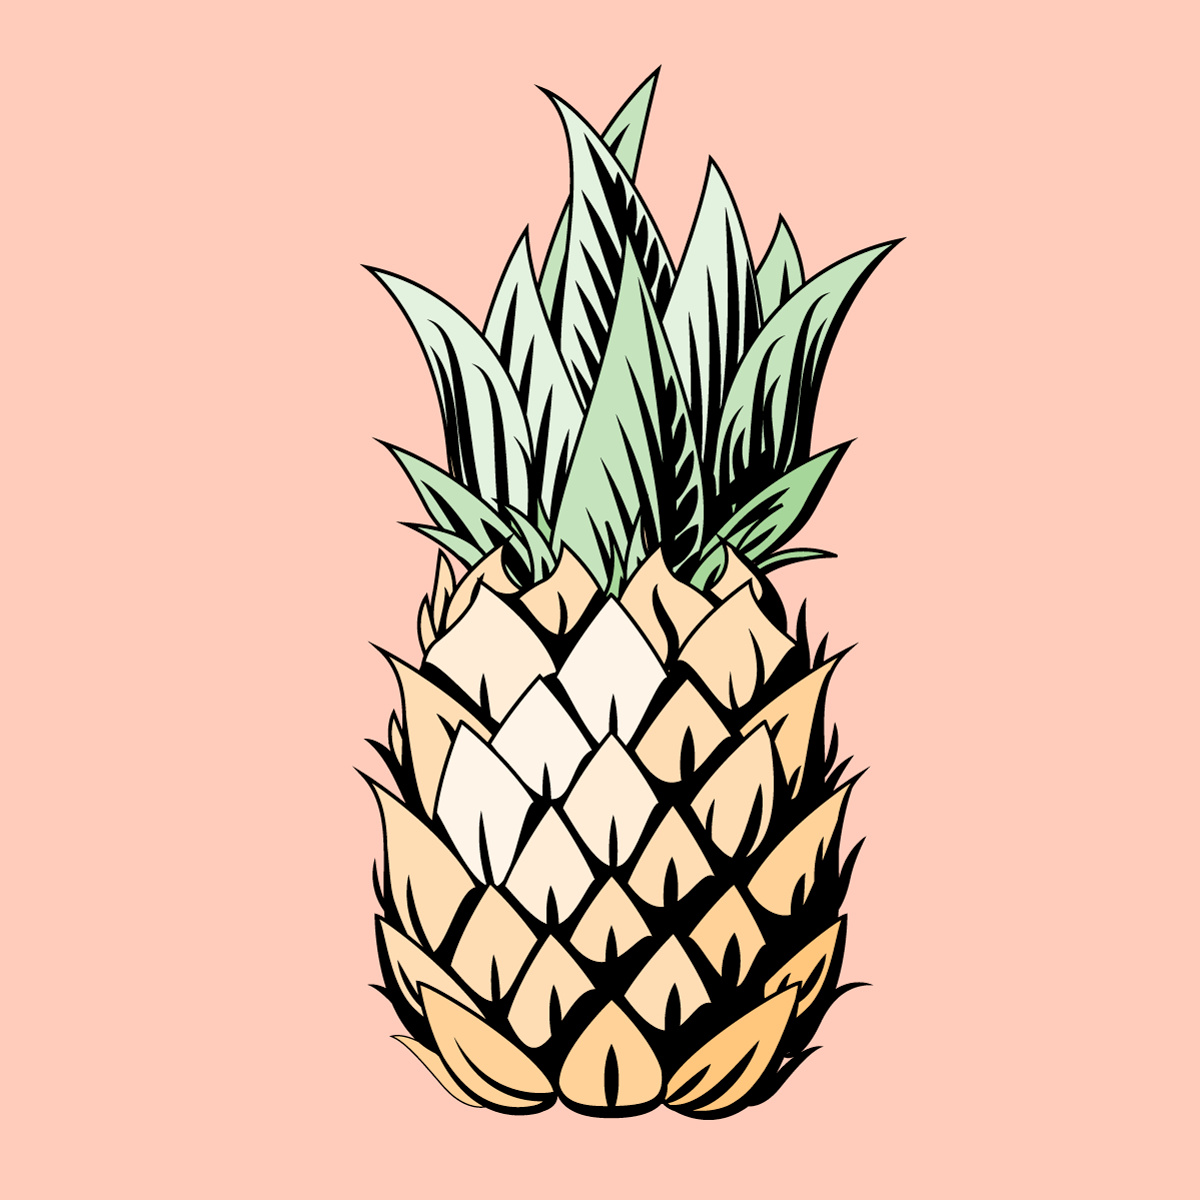 Pineapple-01.png